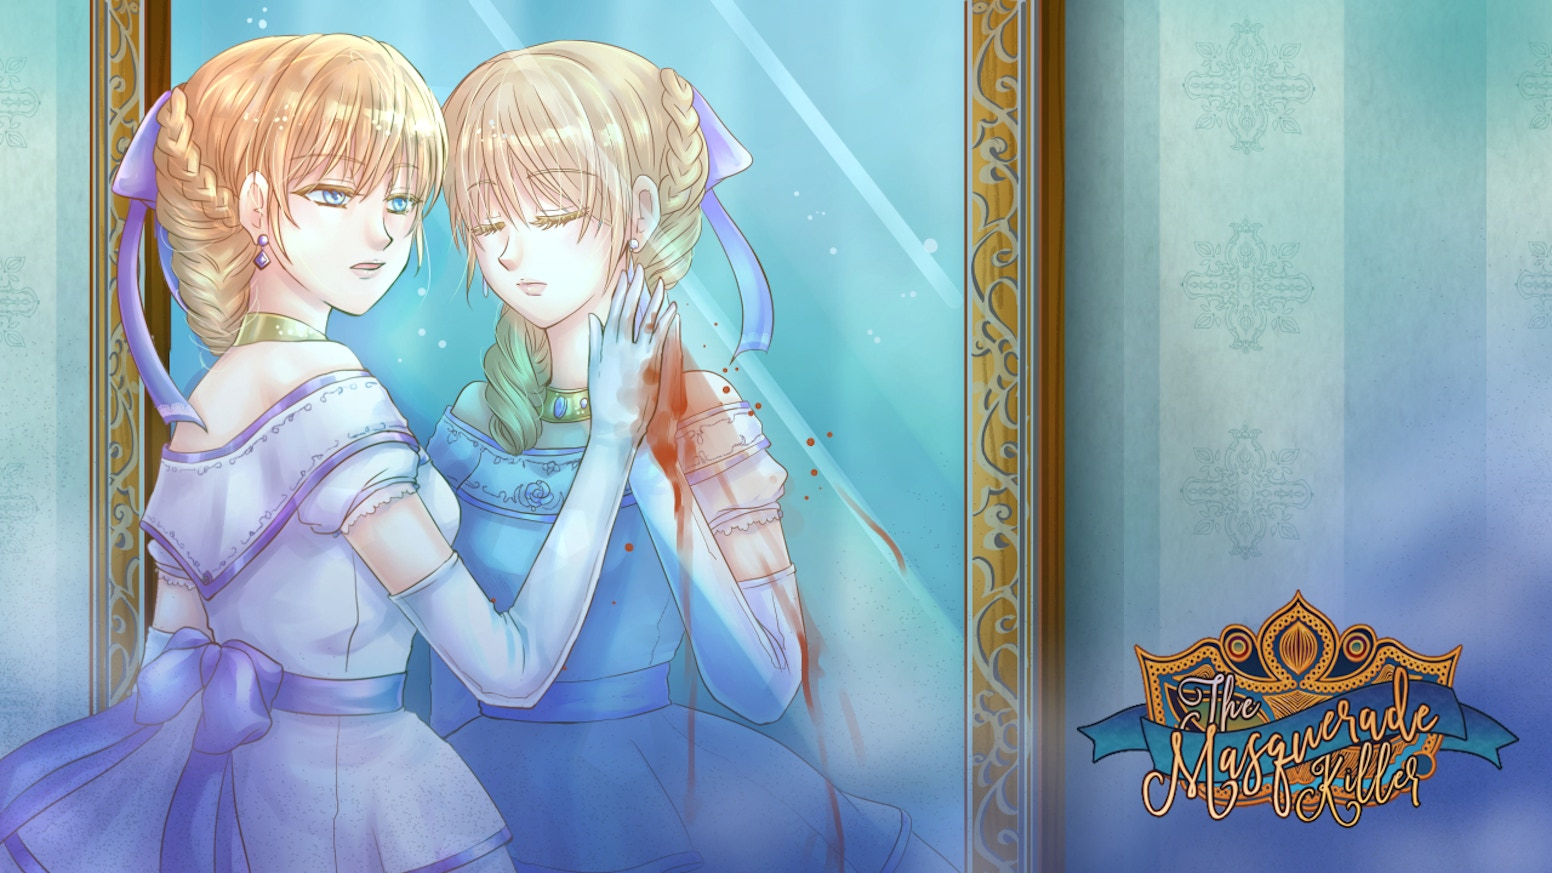 The Masquerade Killer - Otome Game / Visual Novel by